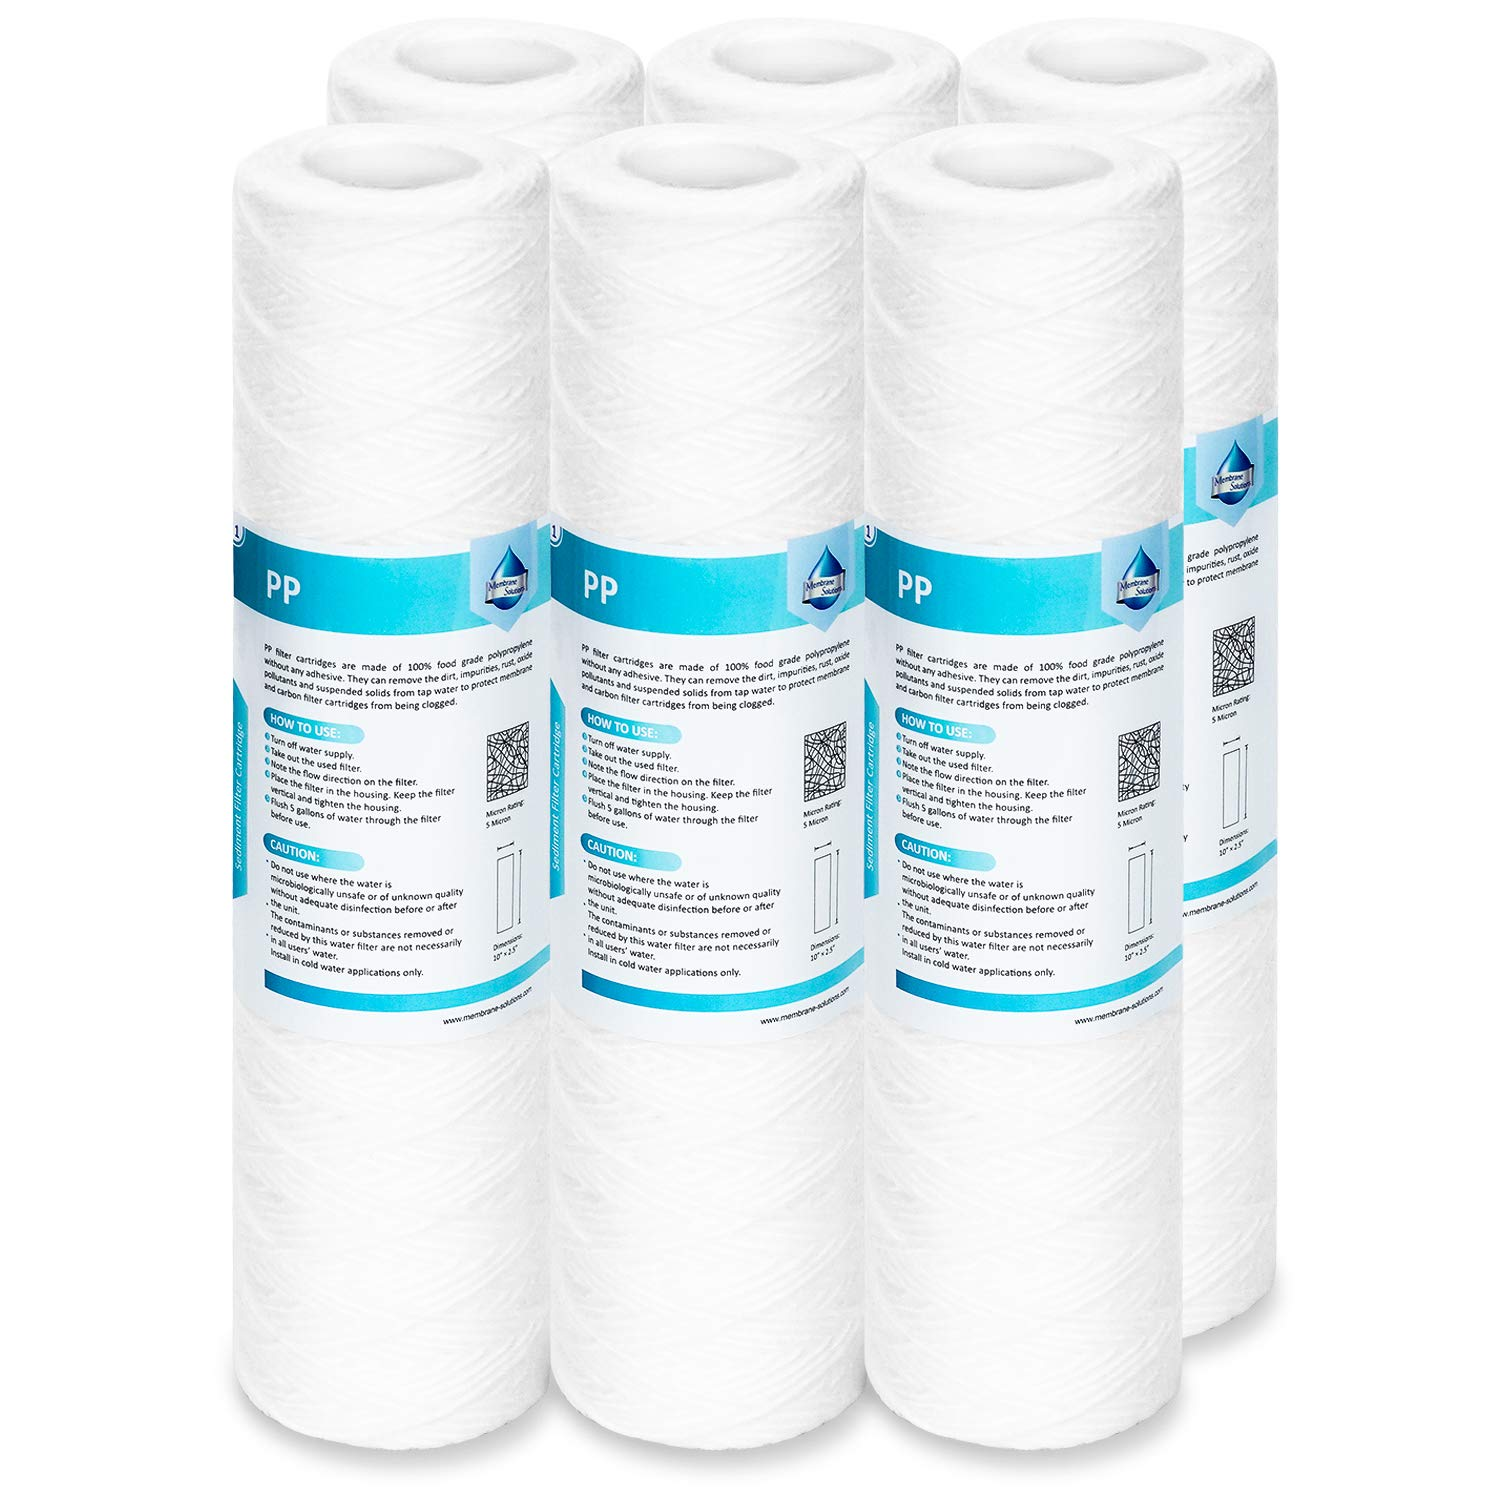 "Membrane Solutions 20 Micron String Wound Water Filter Universal Whole House Replacement Cartridge Sediment Filters for Well Water 10""x2.5"" - 6 Pack"